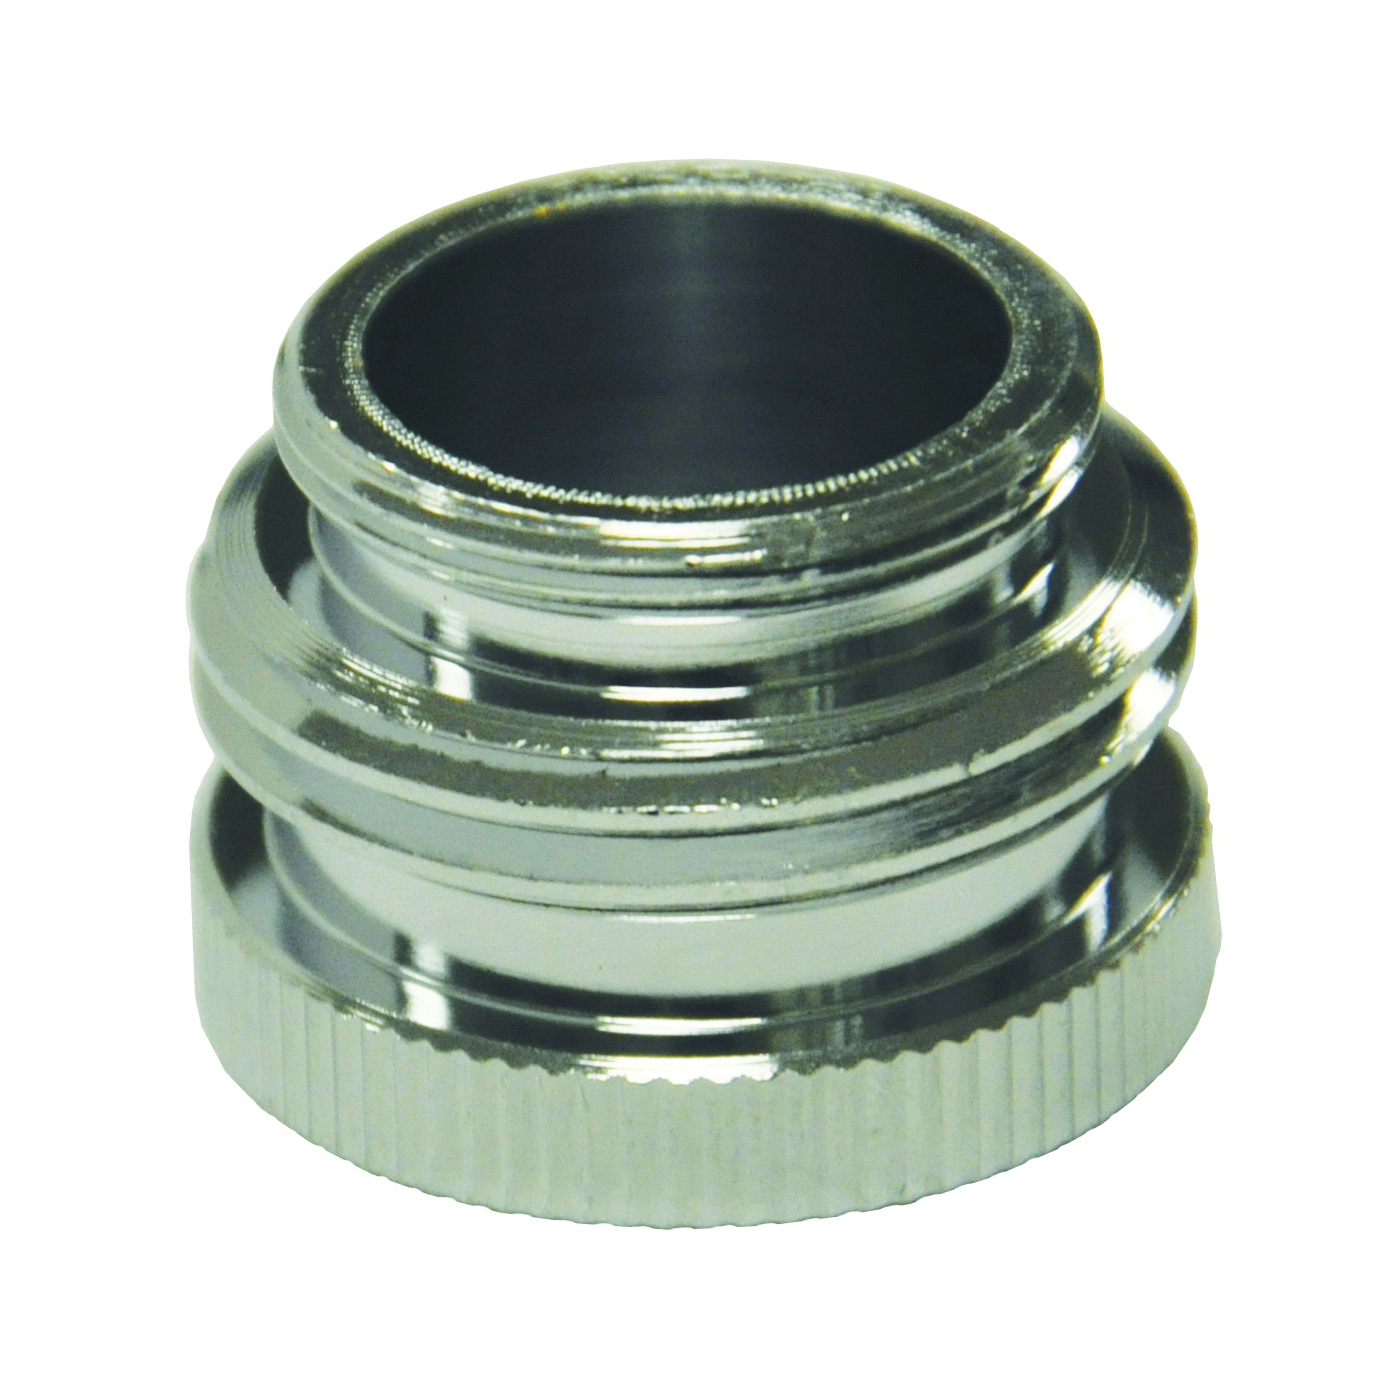 Picture of Danco 10509 Hose Aerator Adapter, 55/64-27 x 3/4 x 55/64-27 in, Male/GHTM x Female, Brass, Chrome